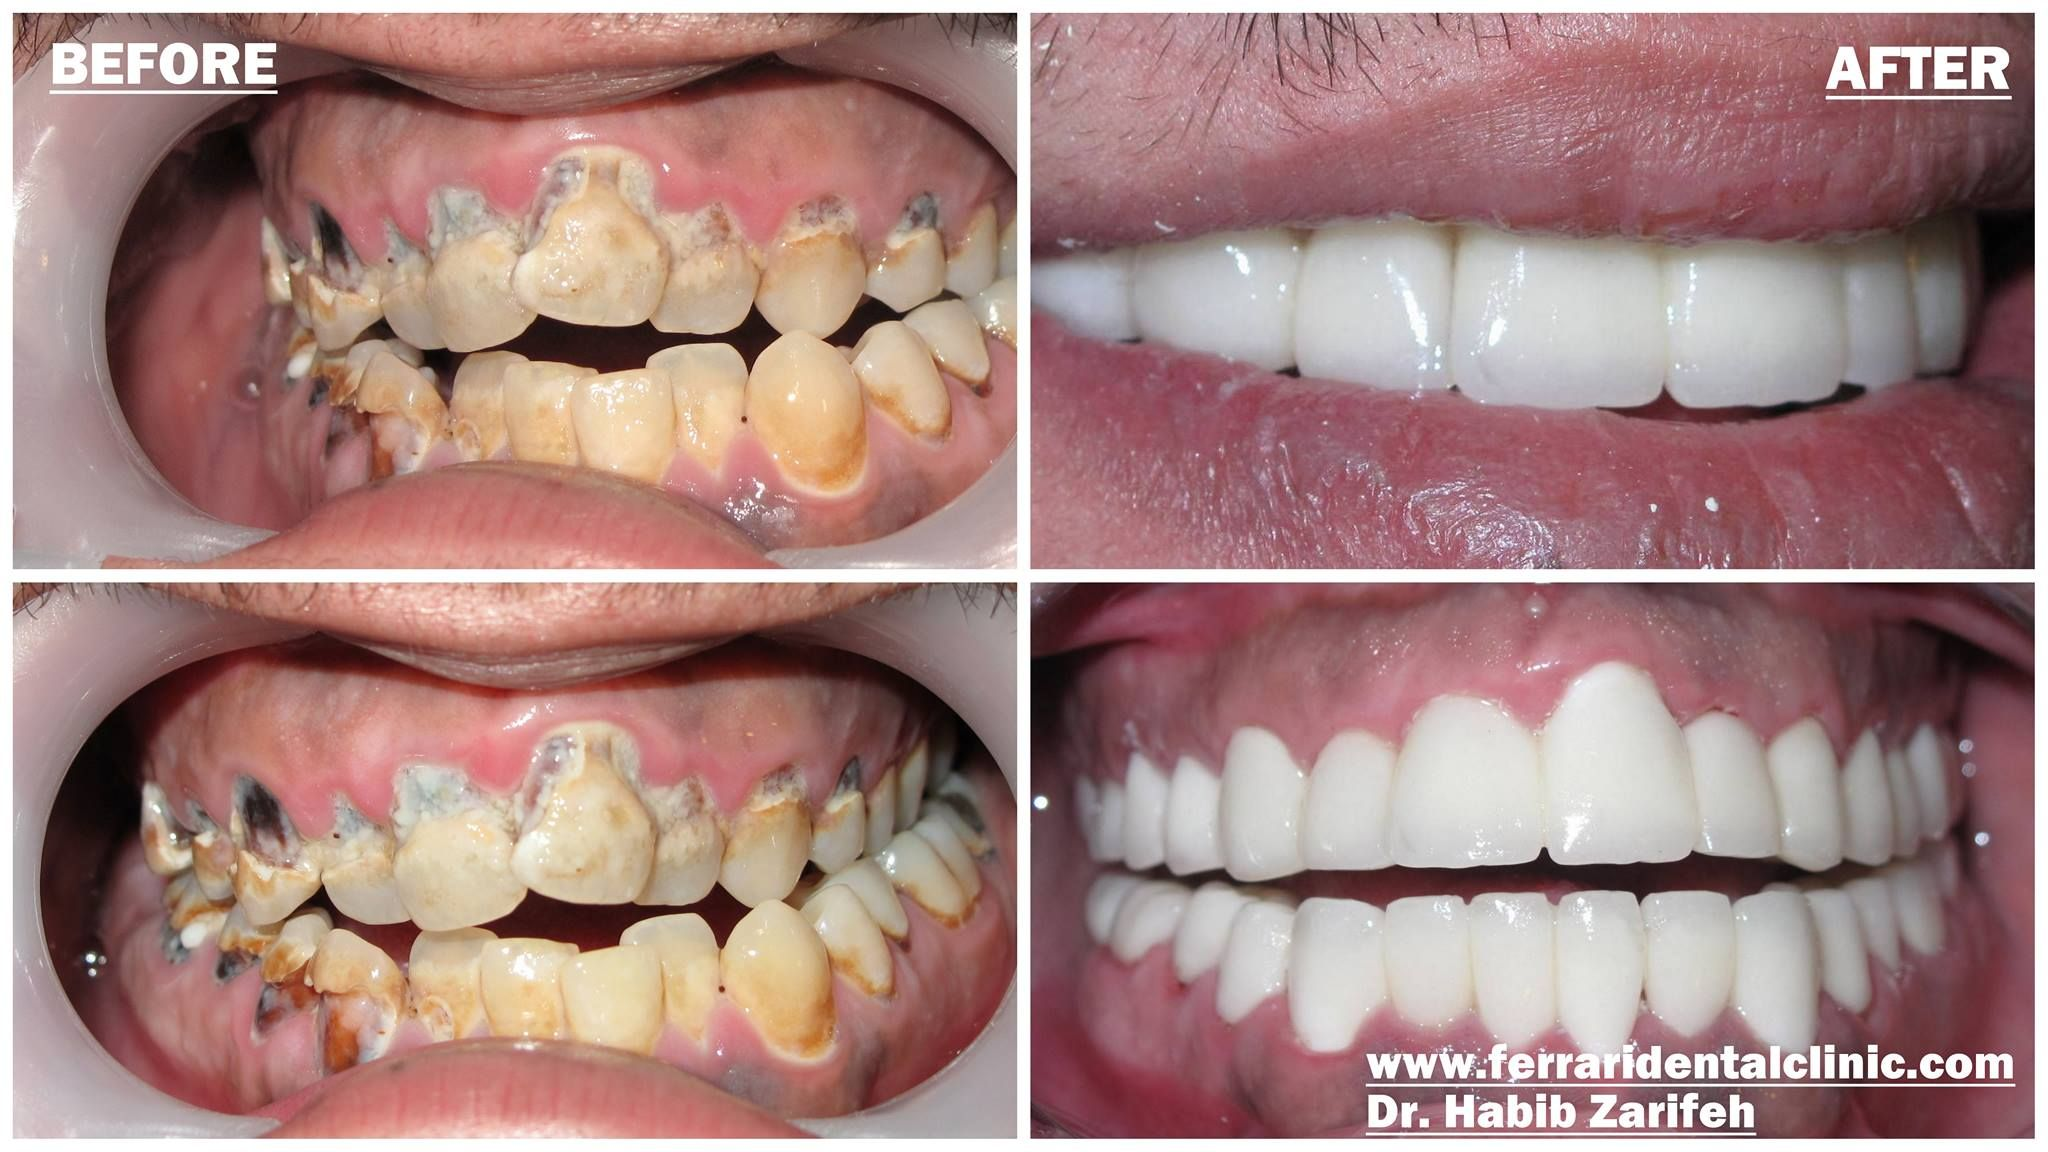 Things you should know before invisalign and veneers my teeth things you should know before invisalign and veneers my teeth transformation httpyoutubewatchvafwi70 ofos good to know solutioingenieria Gallery